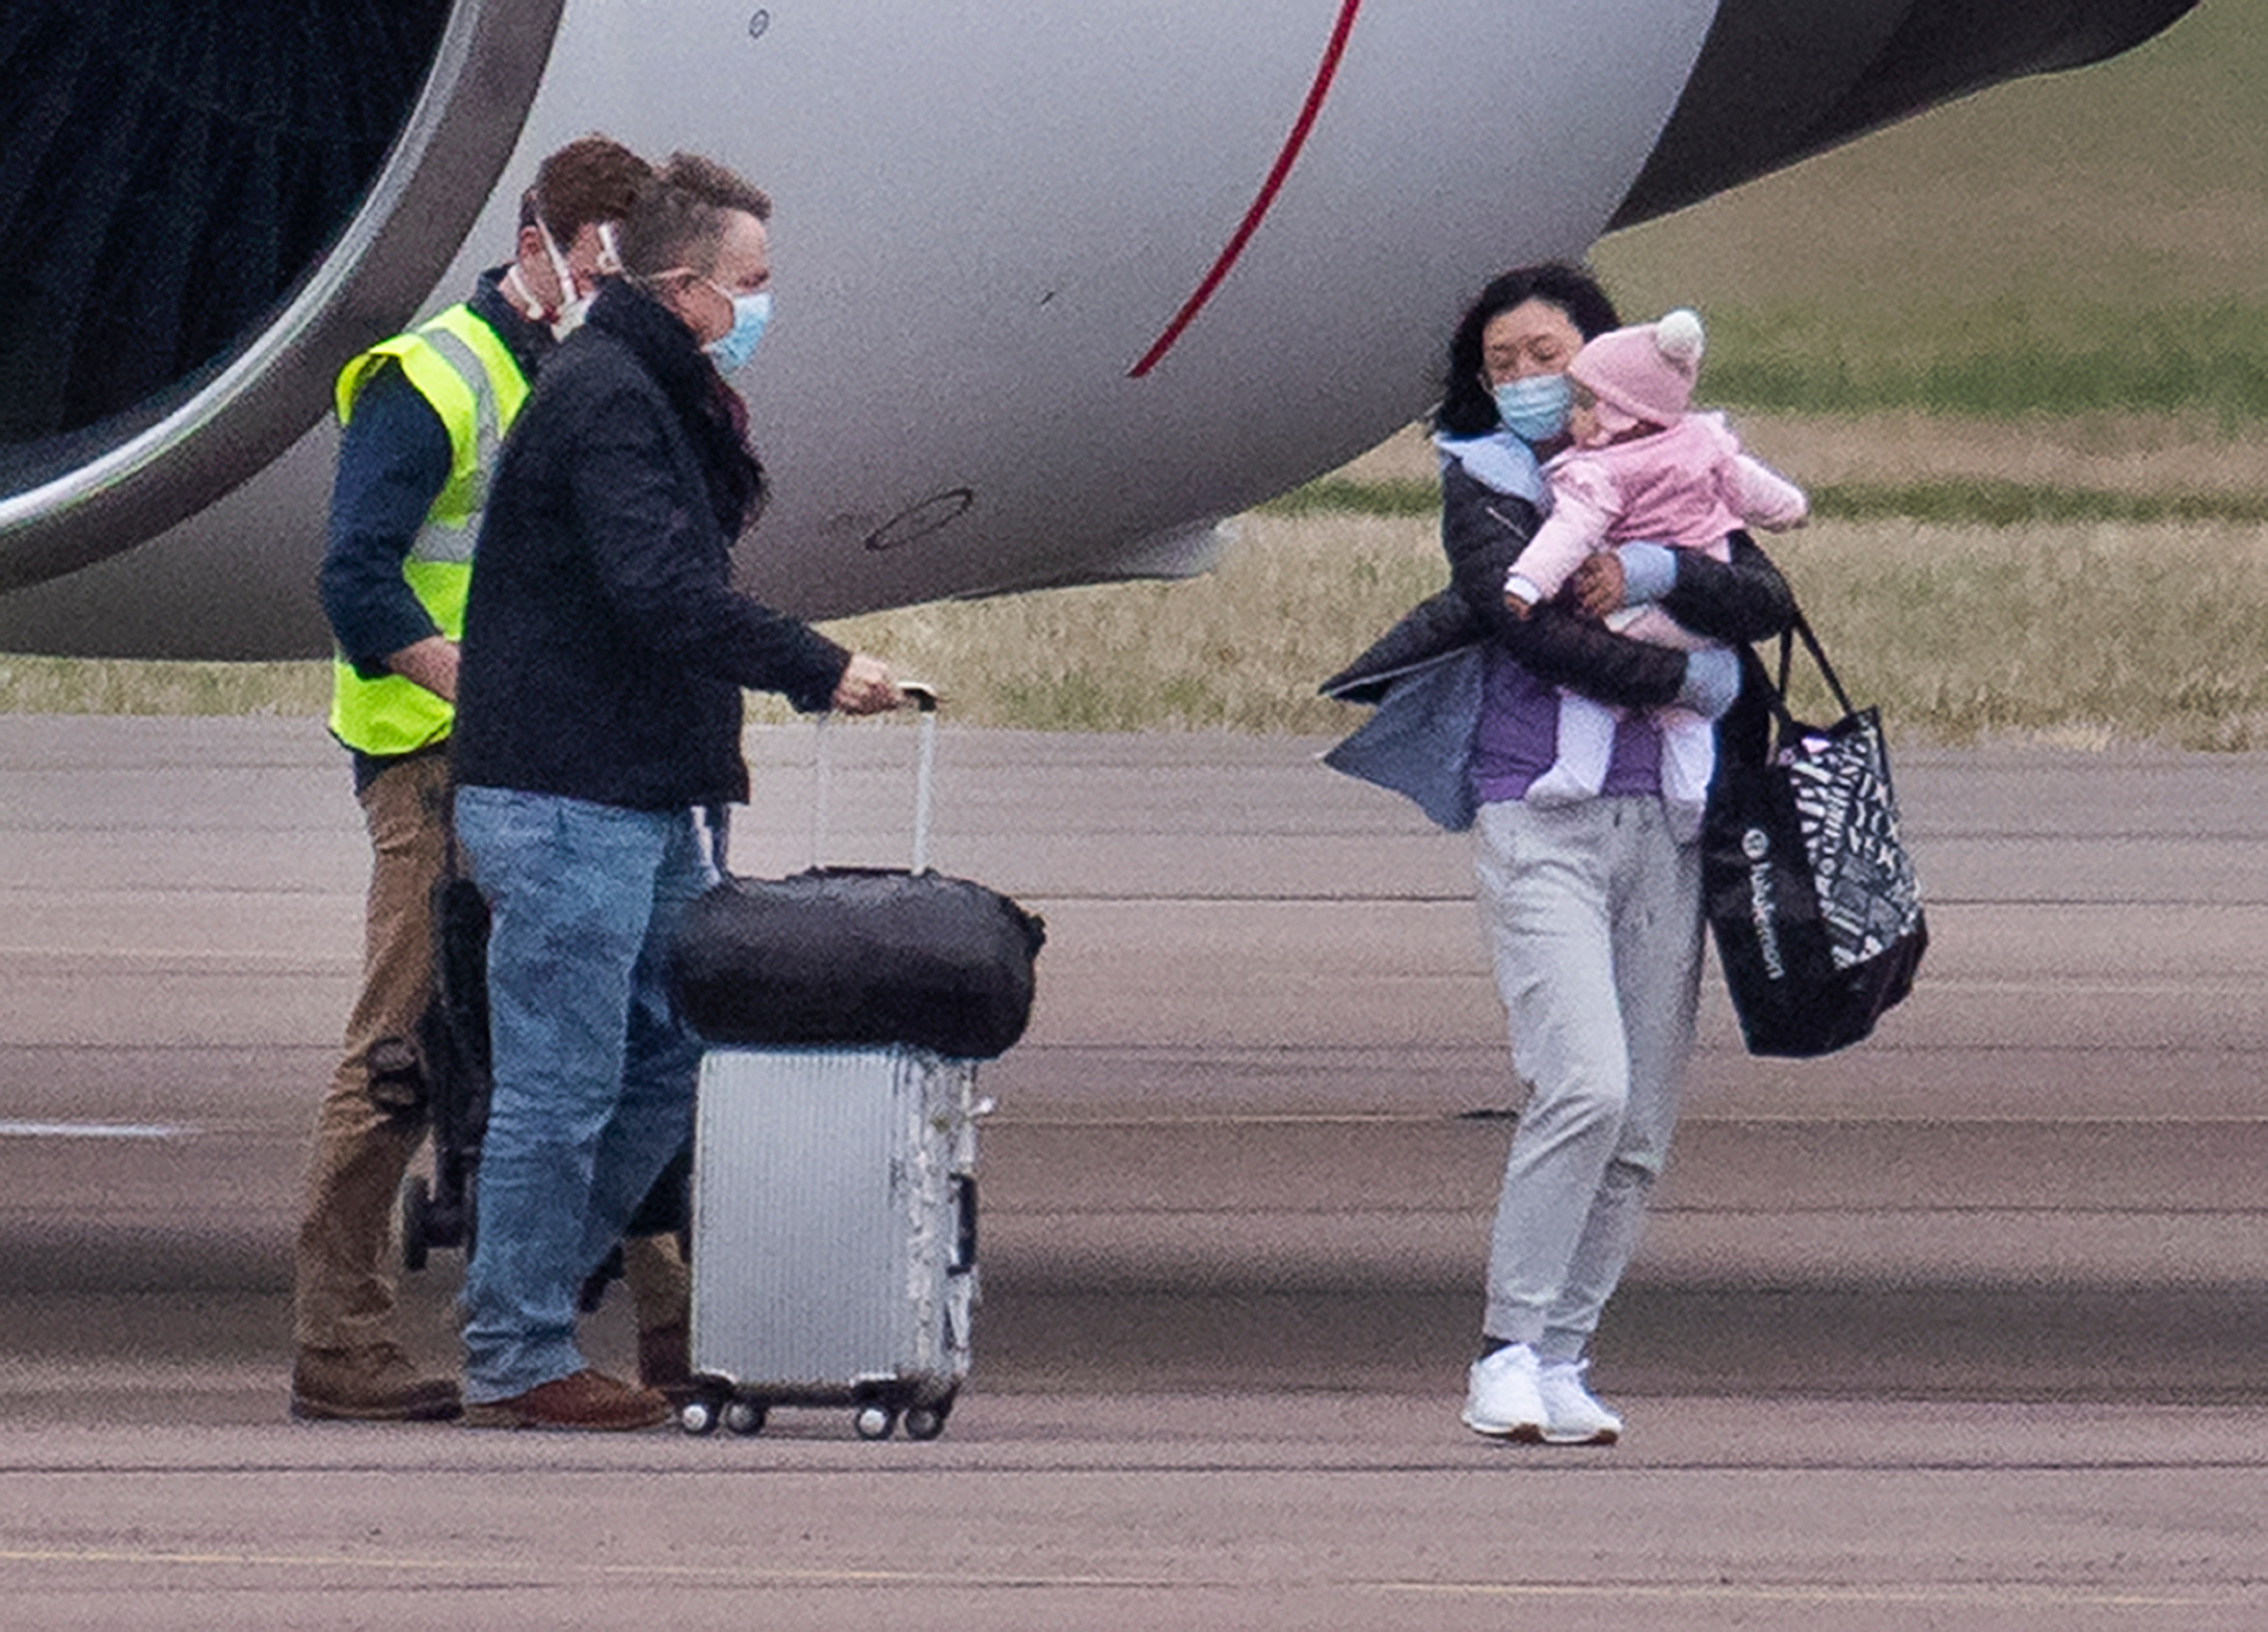 A mum carried a young girl after the Brits touched down in Oxfordshire